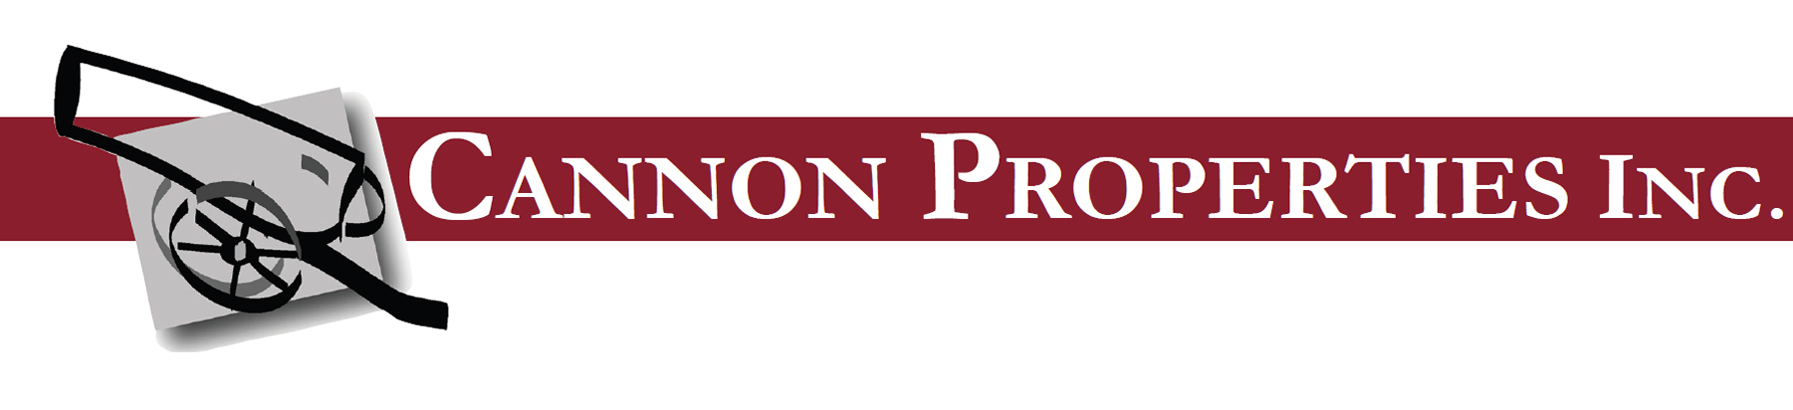 Cannon Properties Inc.